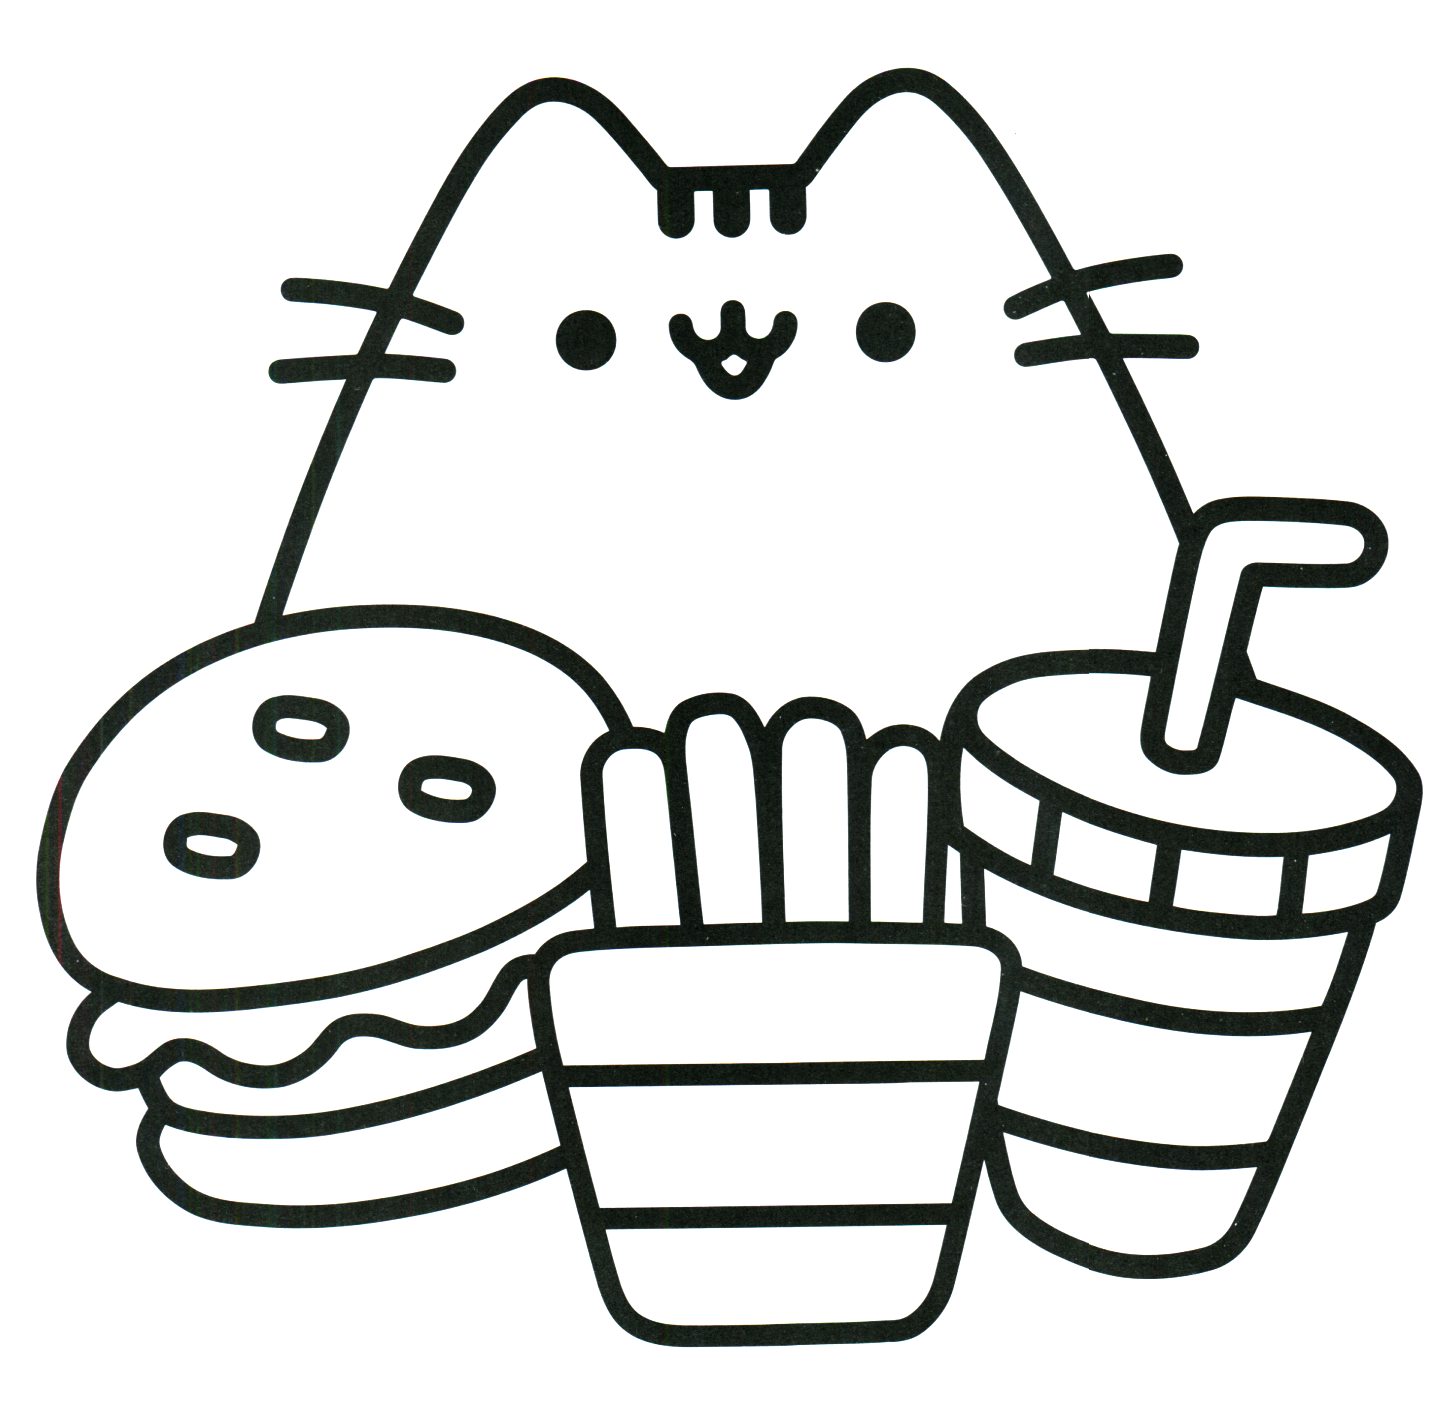 pusheen coloring book pusheen pusheen the cat coloring pages to printcolouring - Print Color Pages